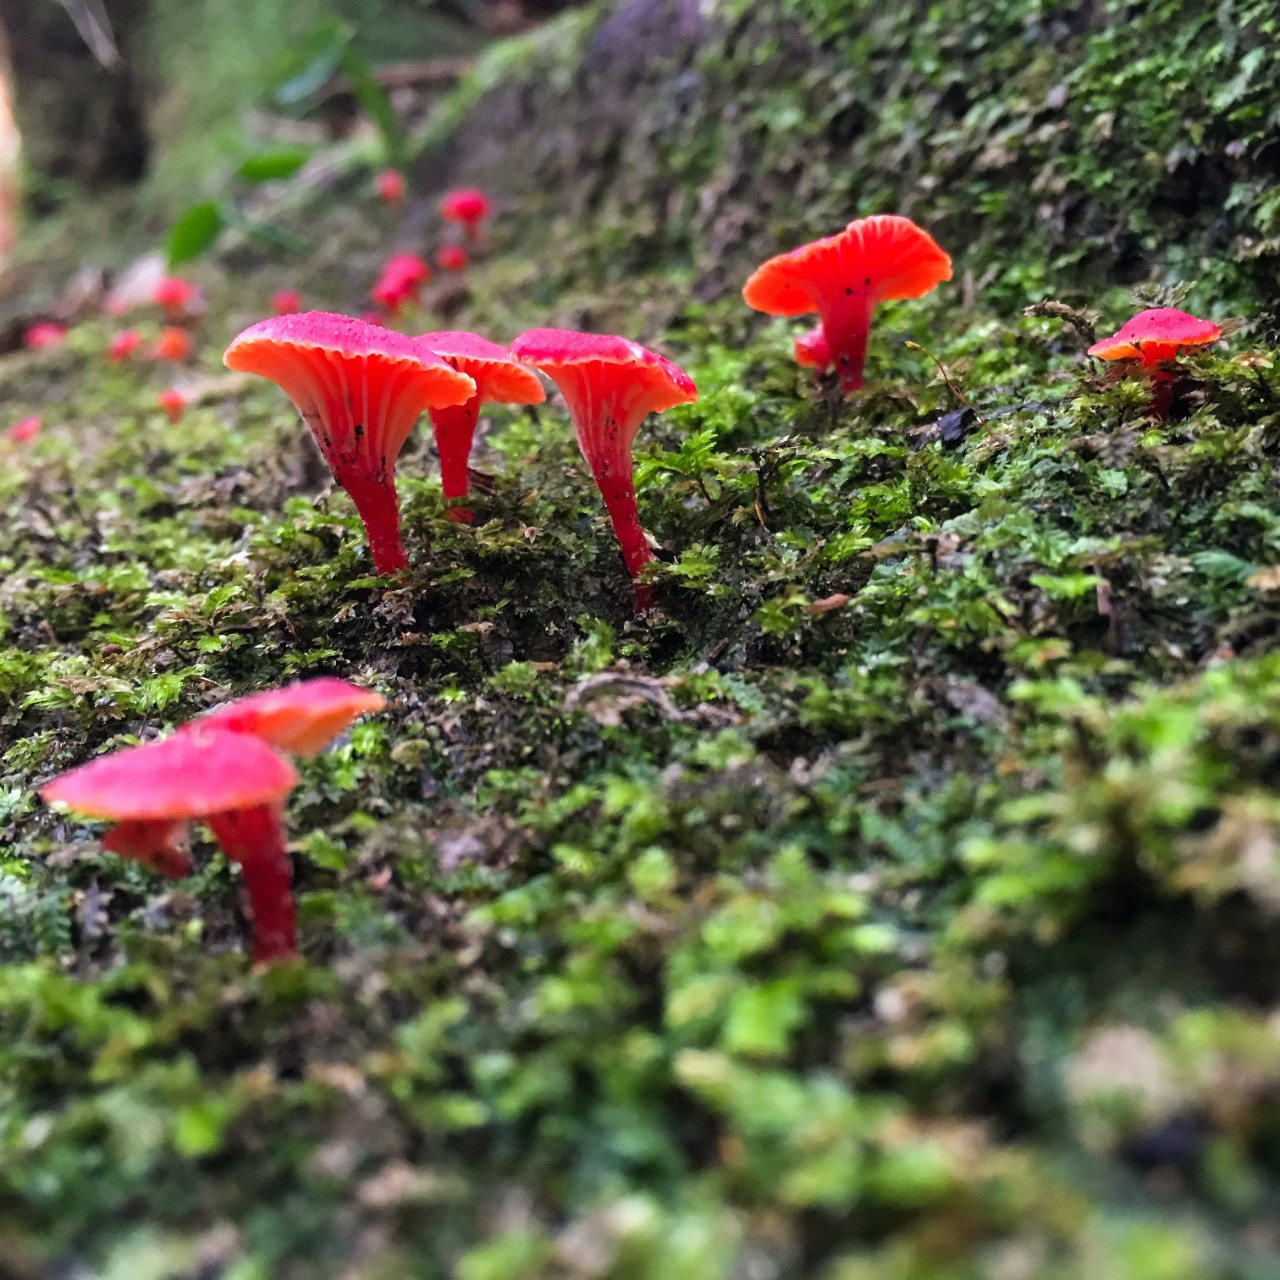 red mushrooms growing in moss